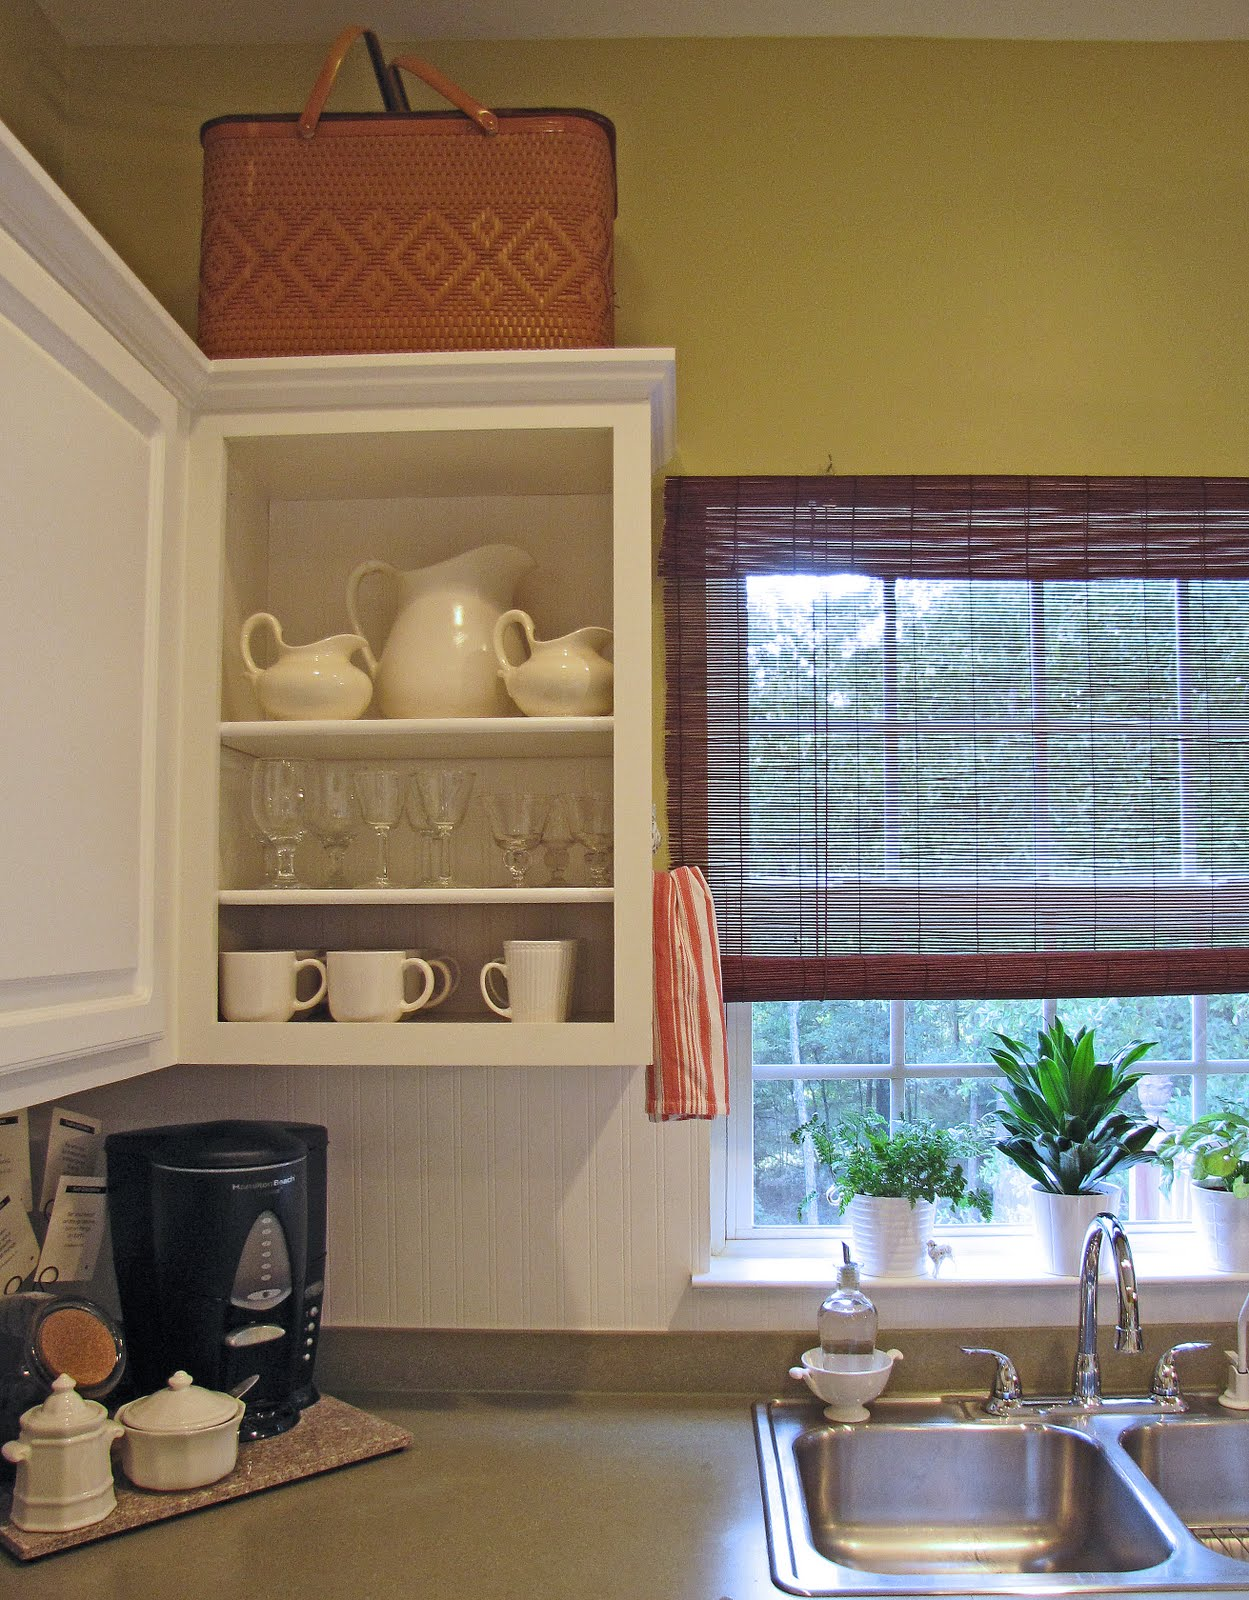 42+ Wainscoting Wallpaper Kitchen Cabinets on ...